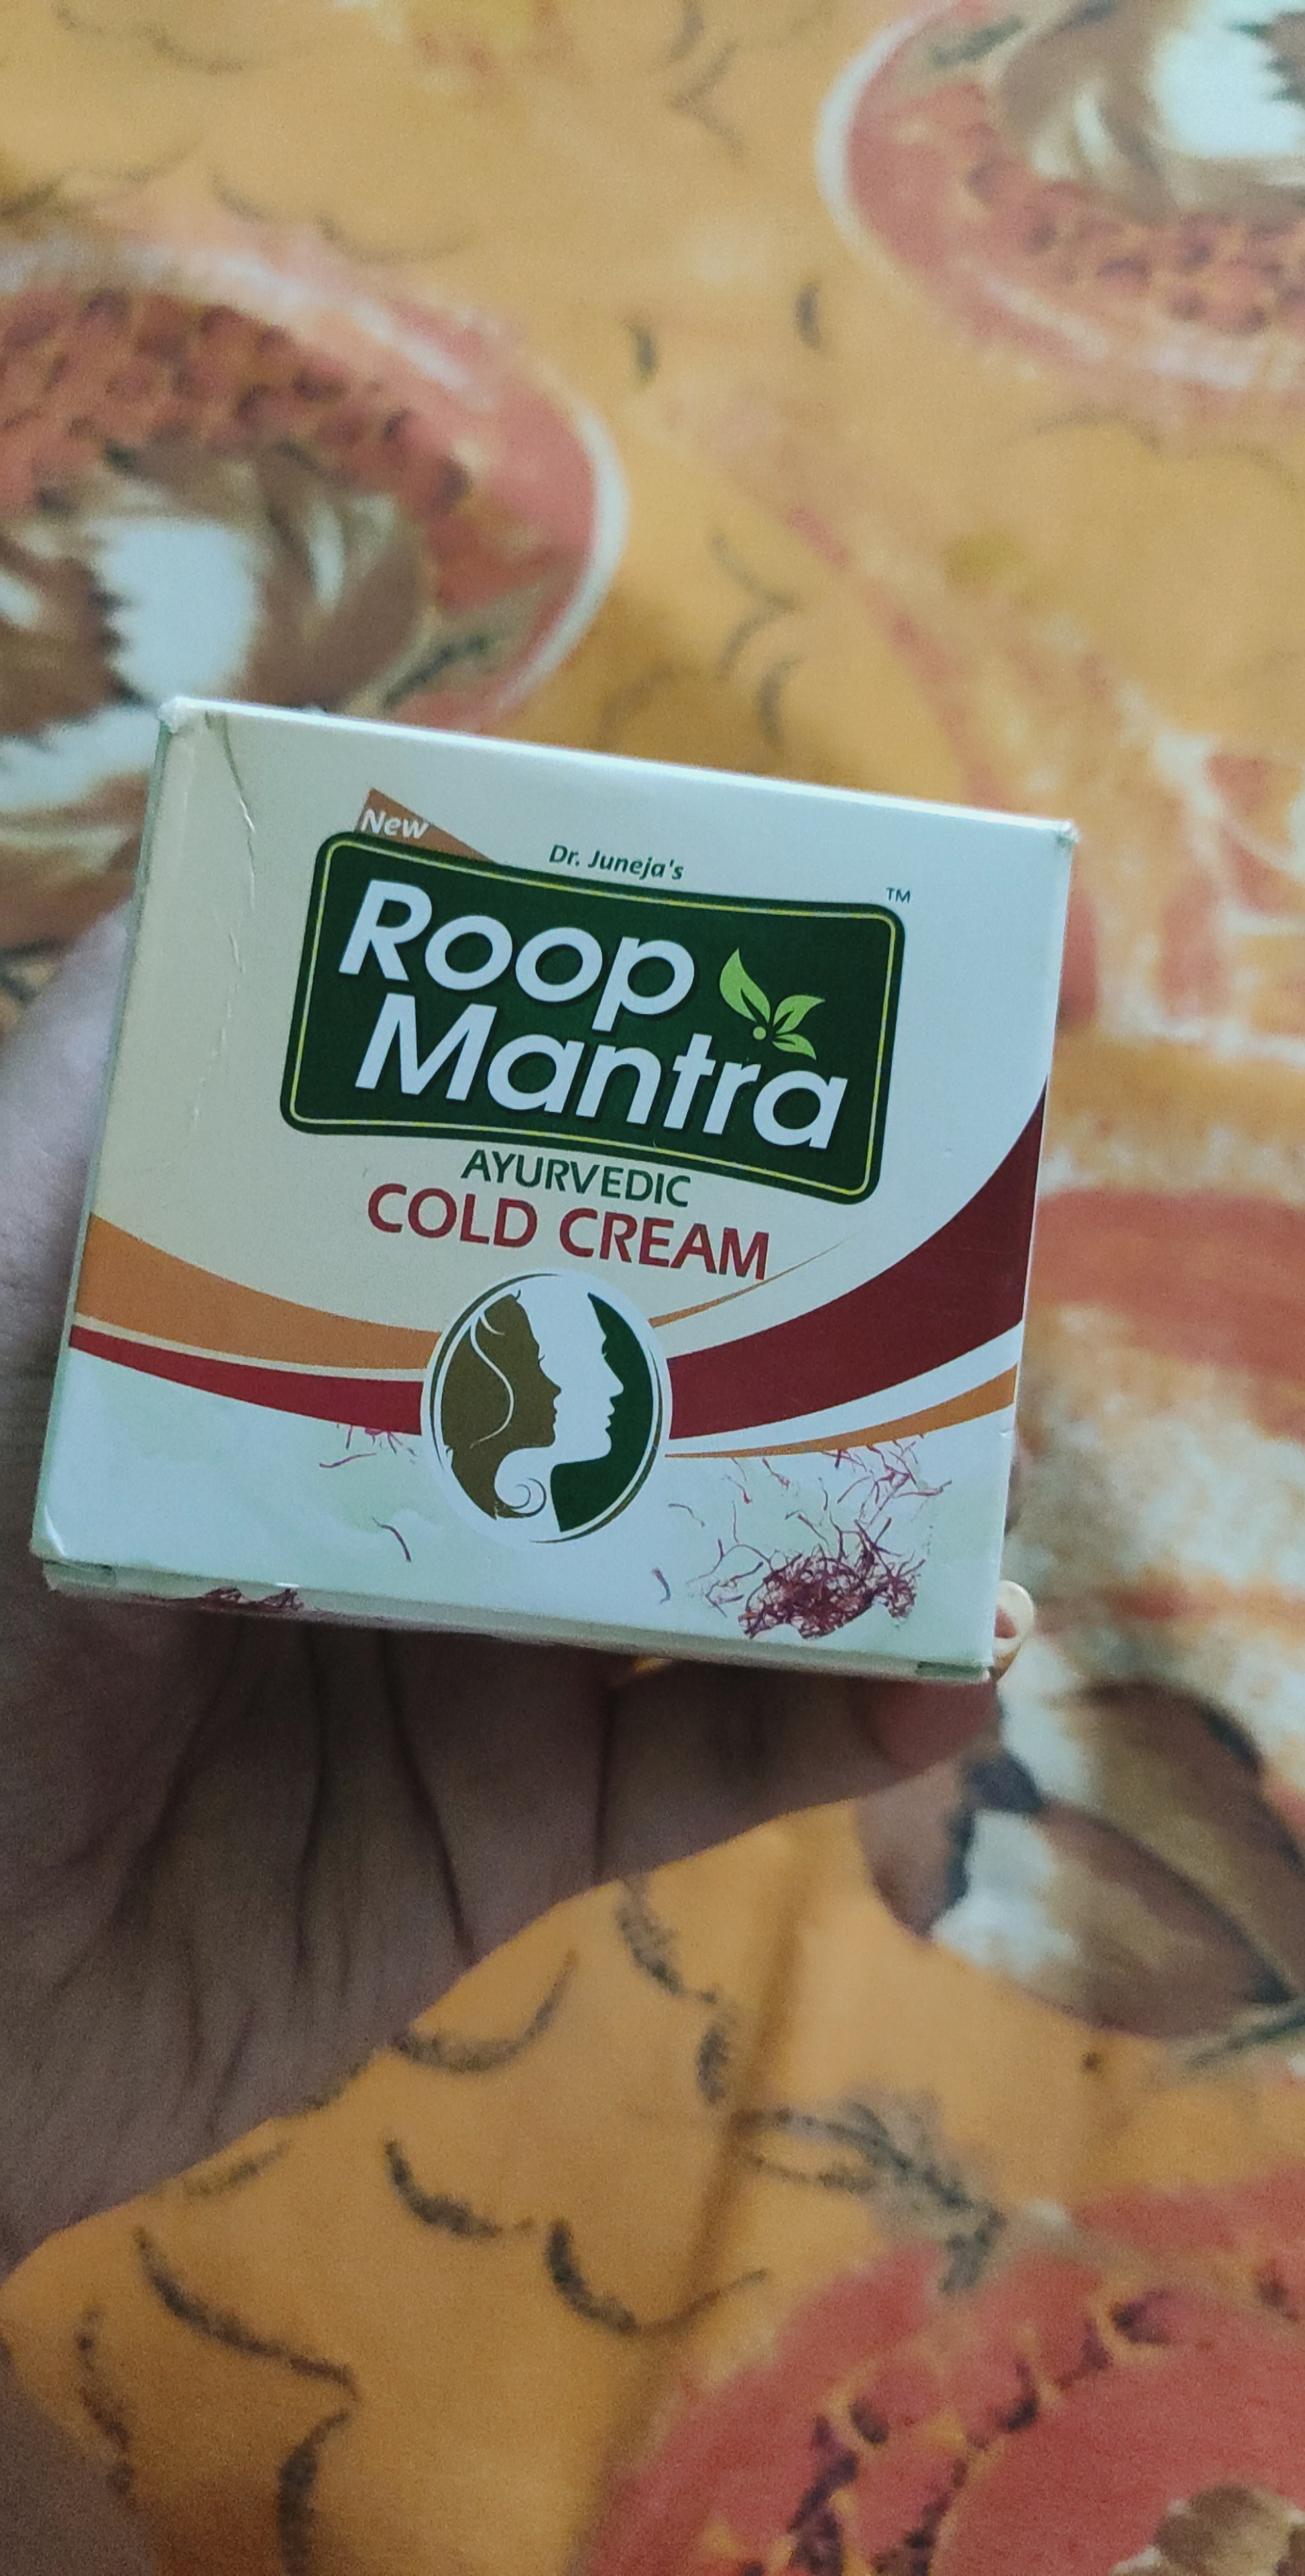 Roop Mantra Cold Cream-Nice cold cream for winter skin care-By sneha8620